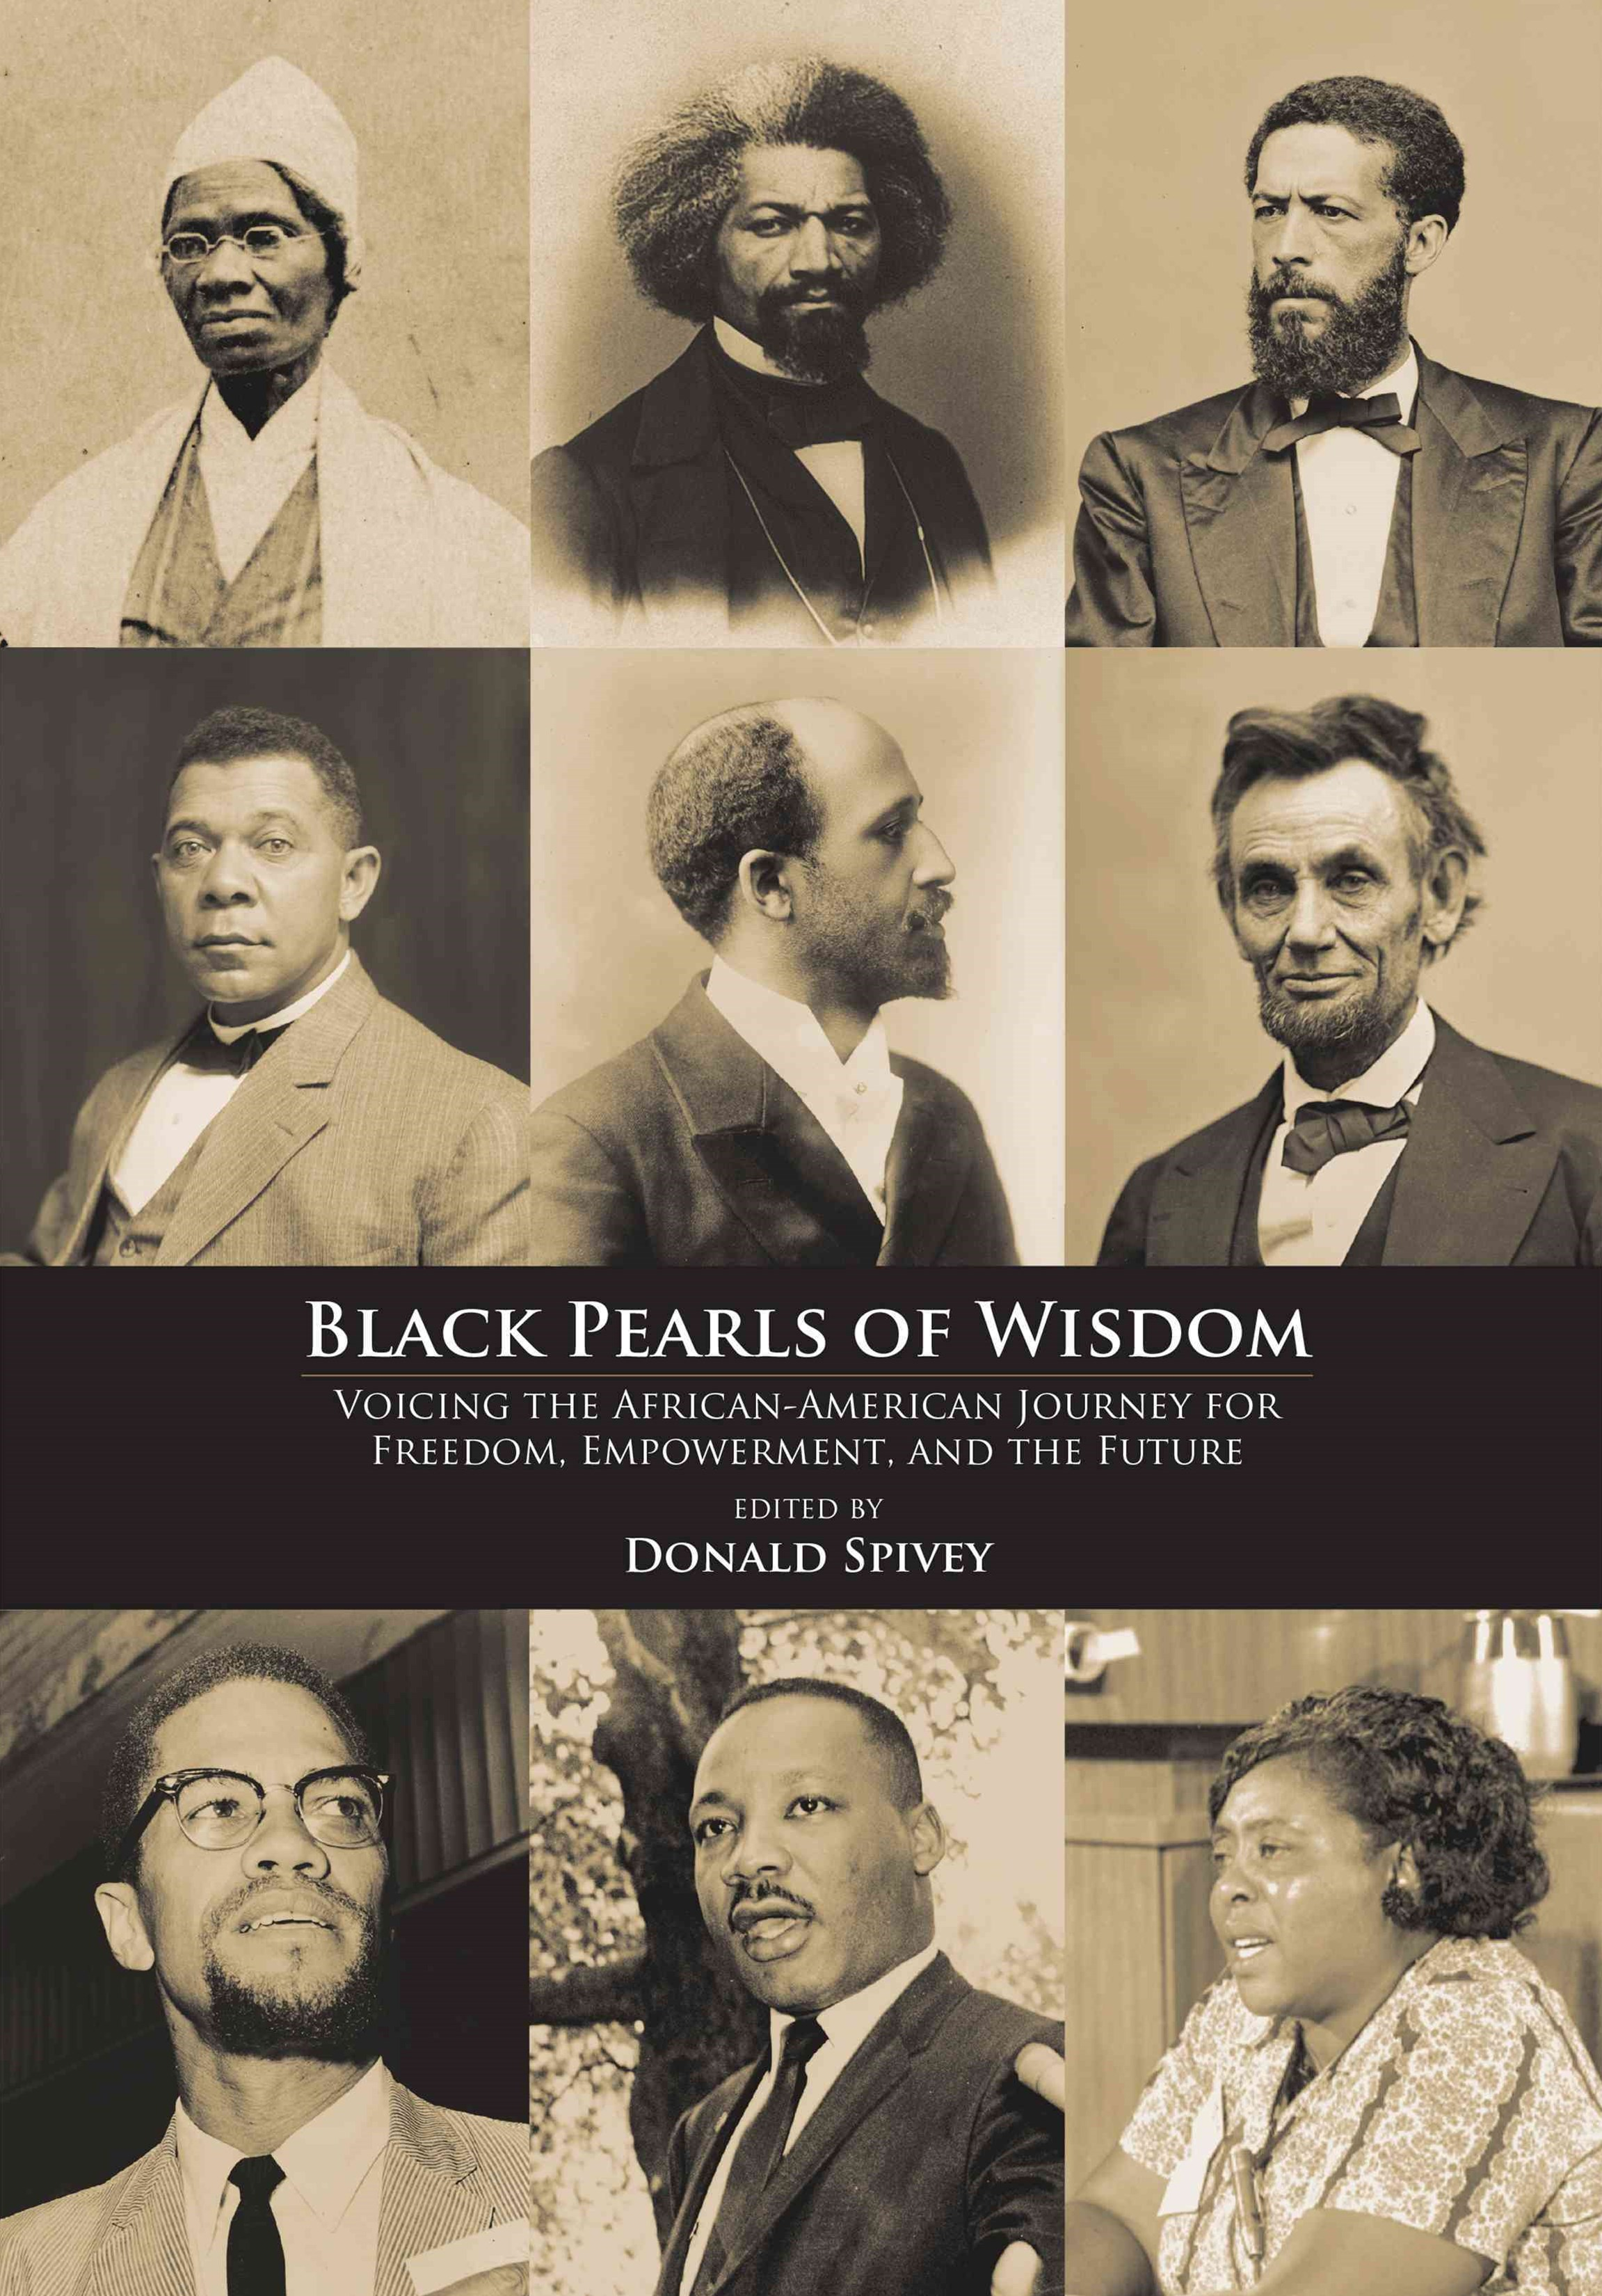 Black Pearls of Wisdom